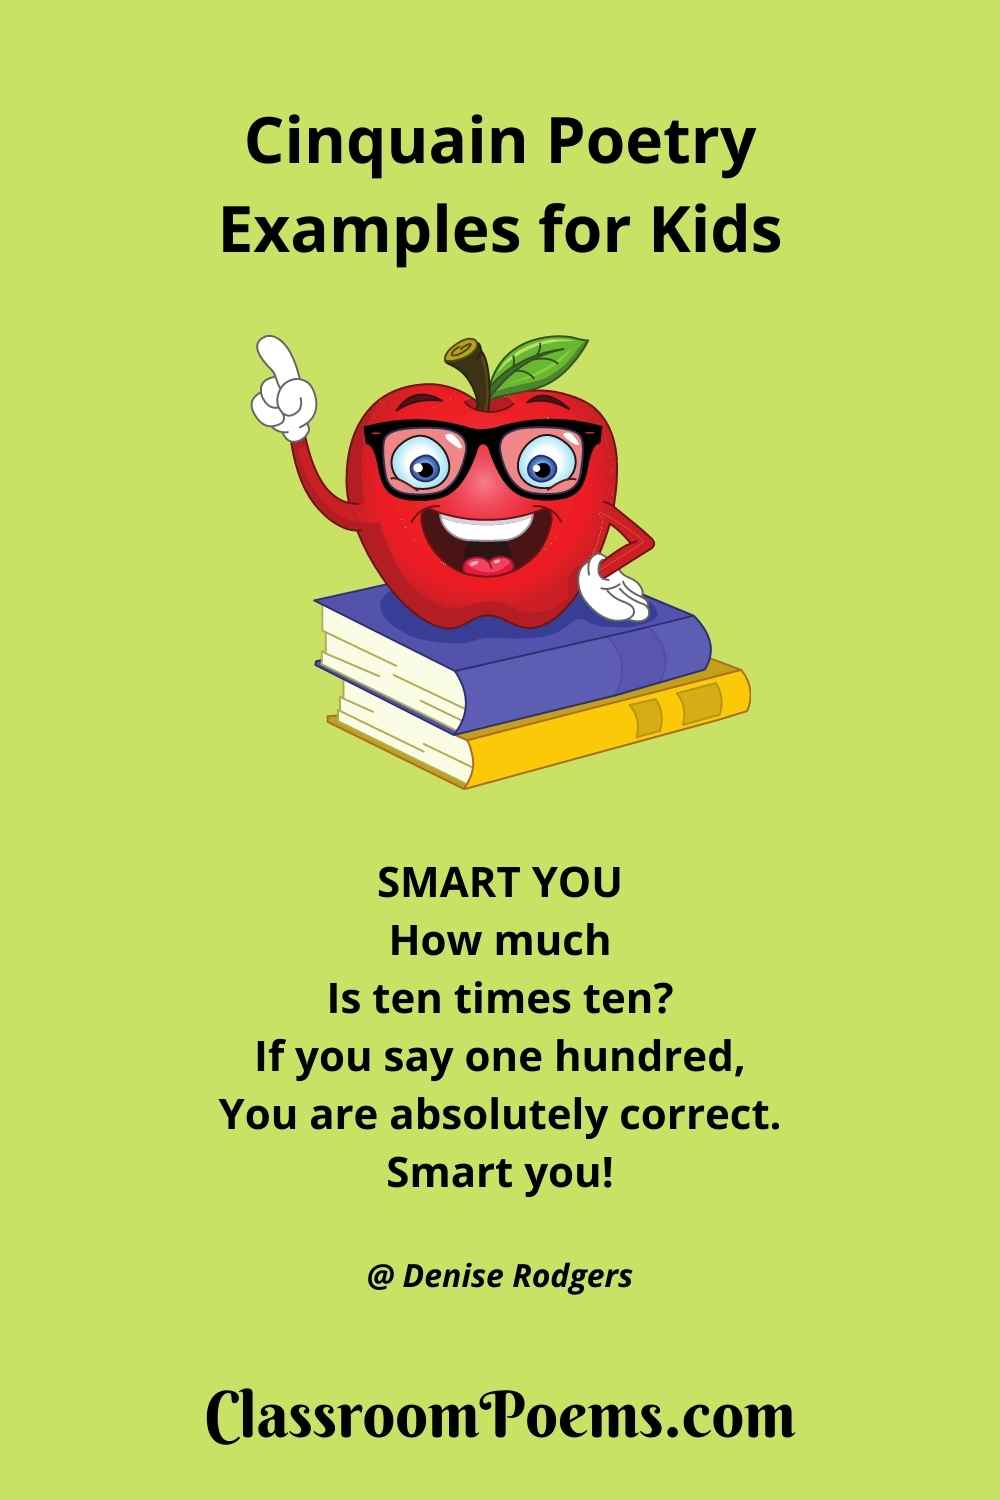 SMART YOU Cinquain Poem by the Poetry Lady Denise Rodgers on ClassroomPoems.com.